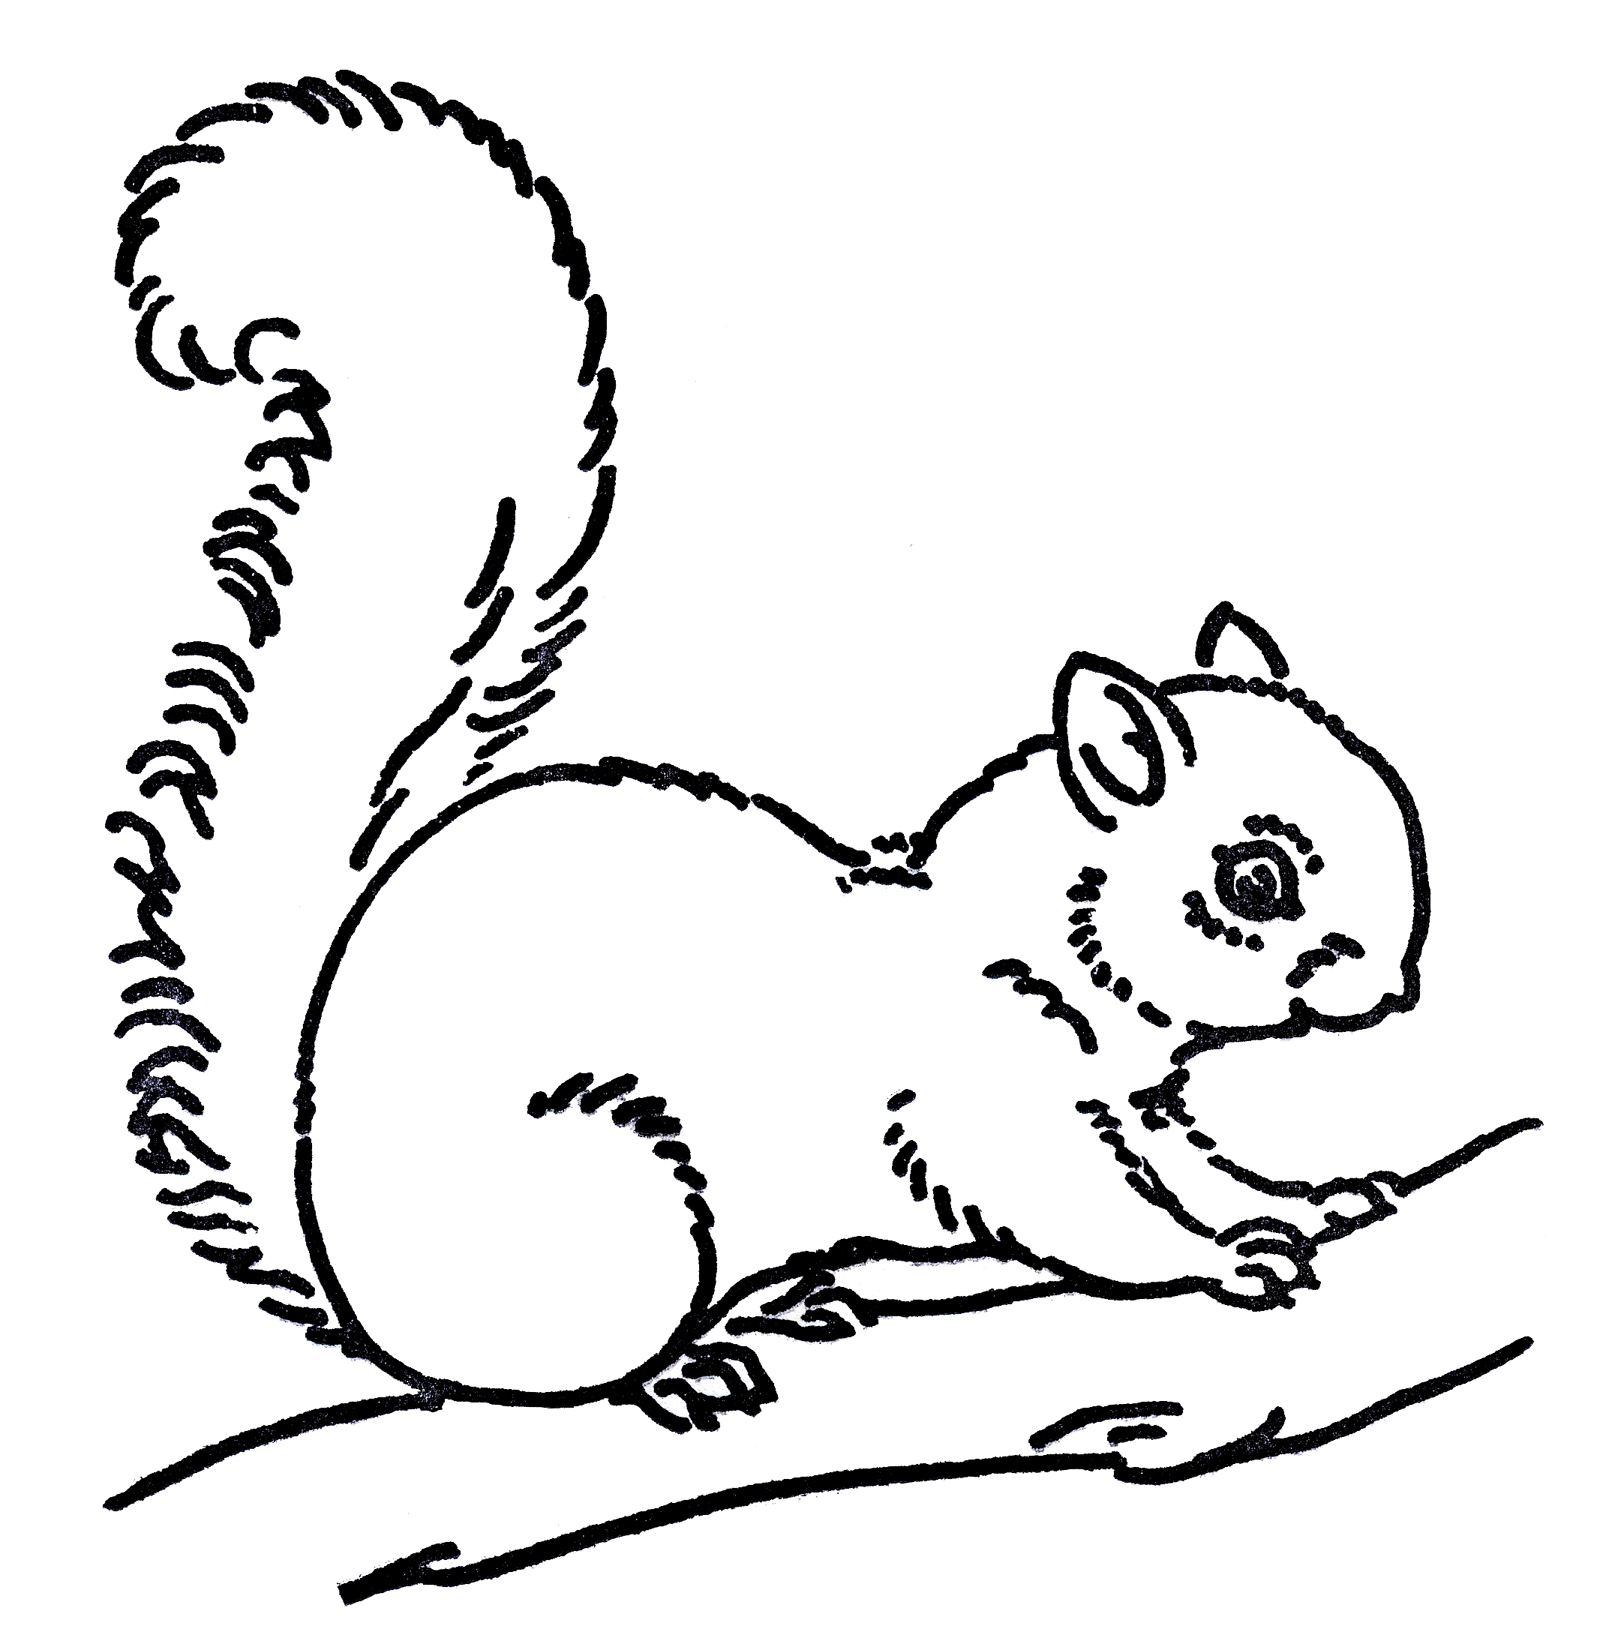 Line Art Graphics : Free line art images squirrel drawings the graphics fairy